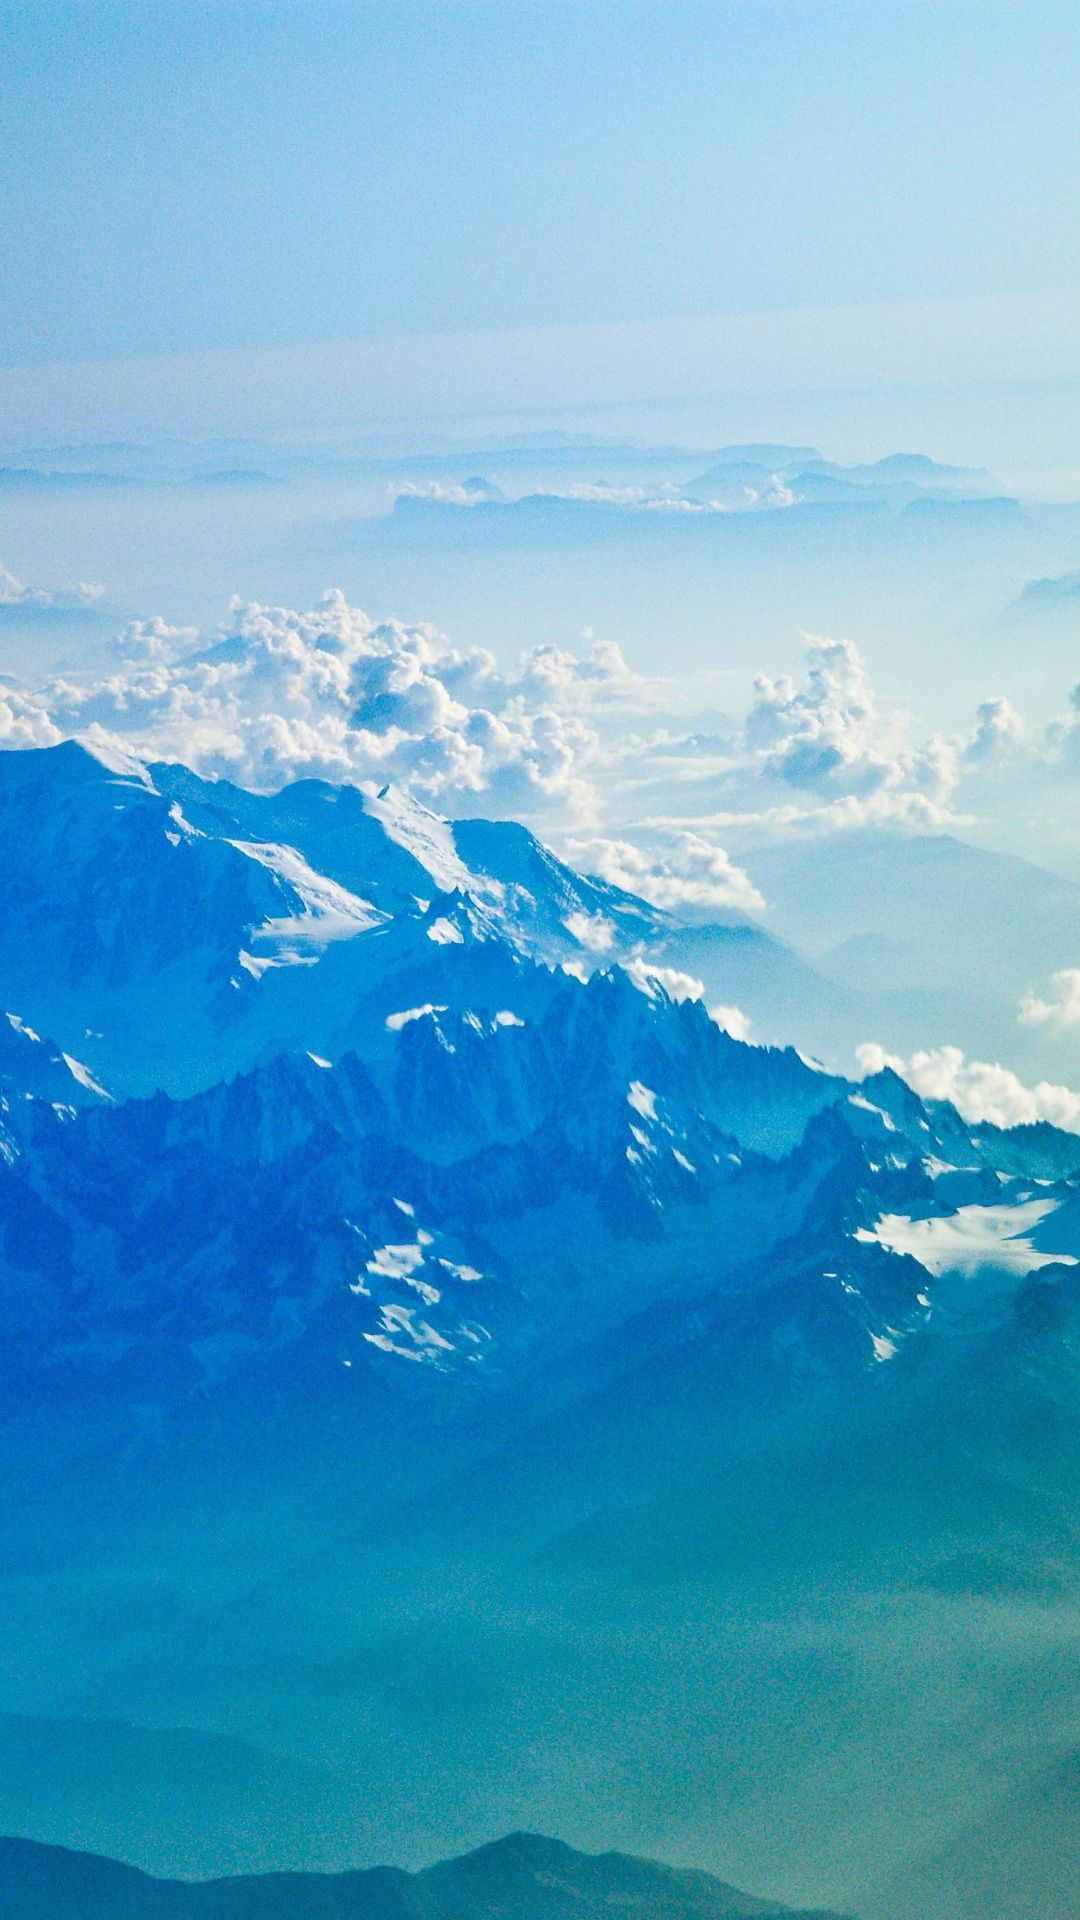 Snowy Mountains Horizon Clouds Nature 1080x1920 Wallpaper Iphone Wallpaper Landscape White Nature Wallpapers Sky